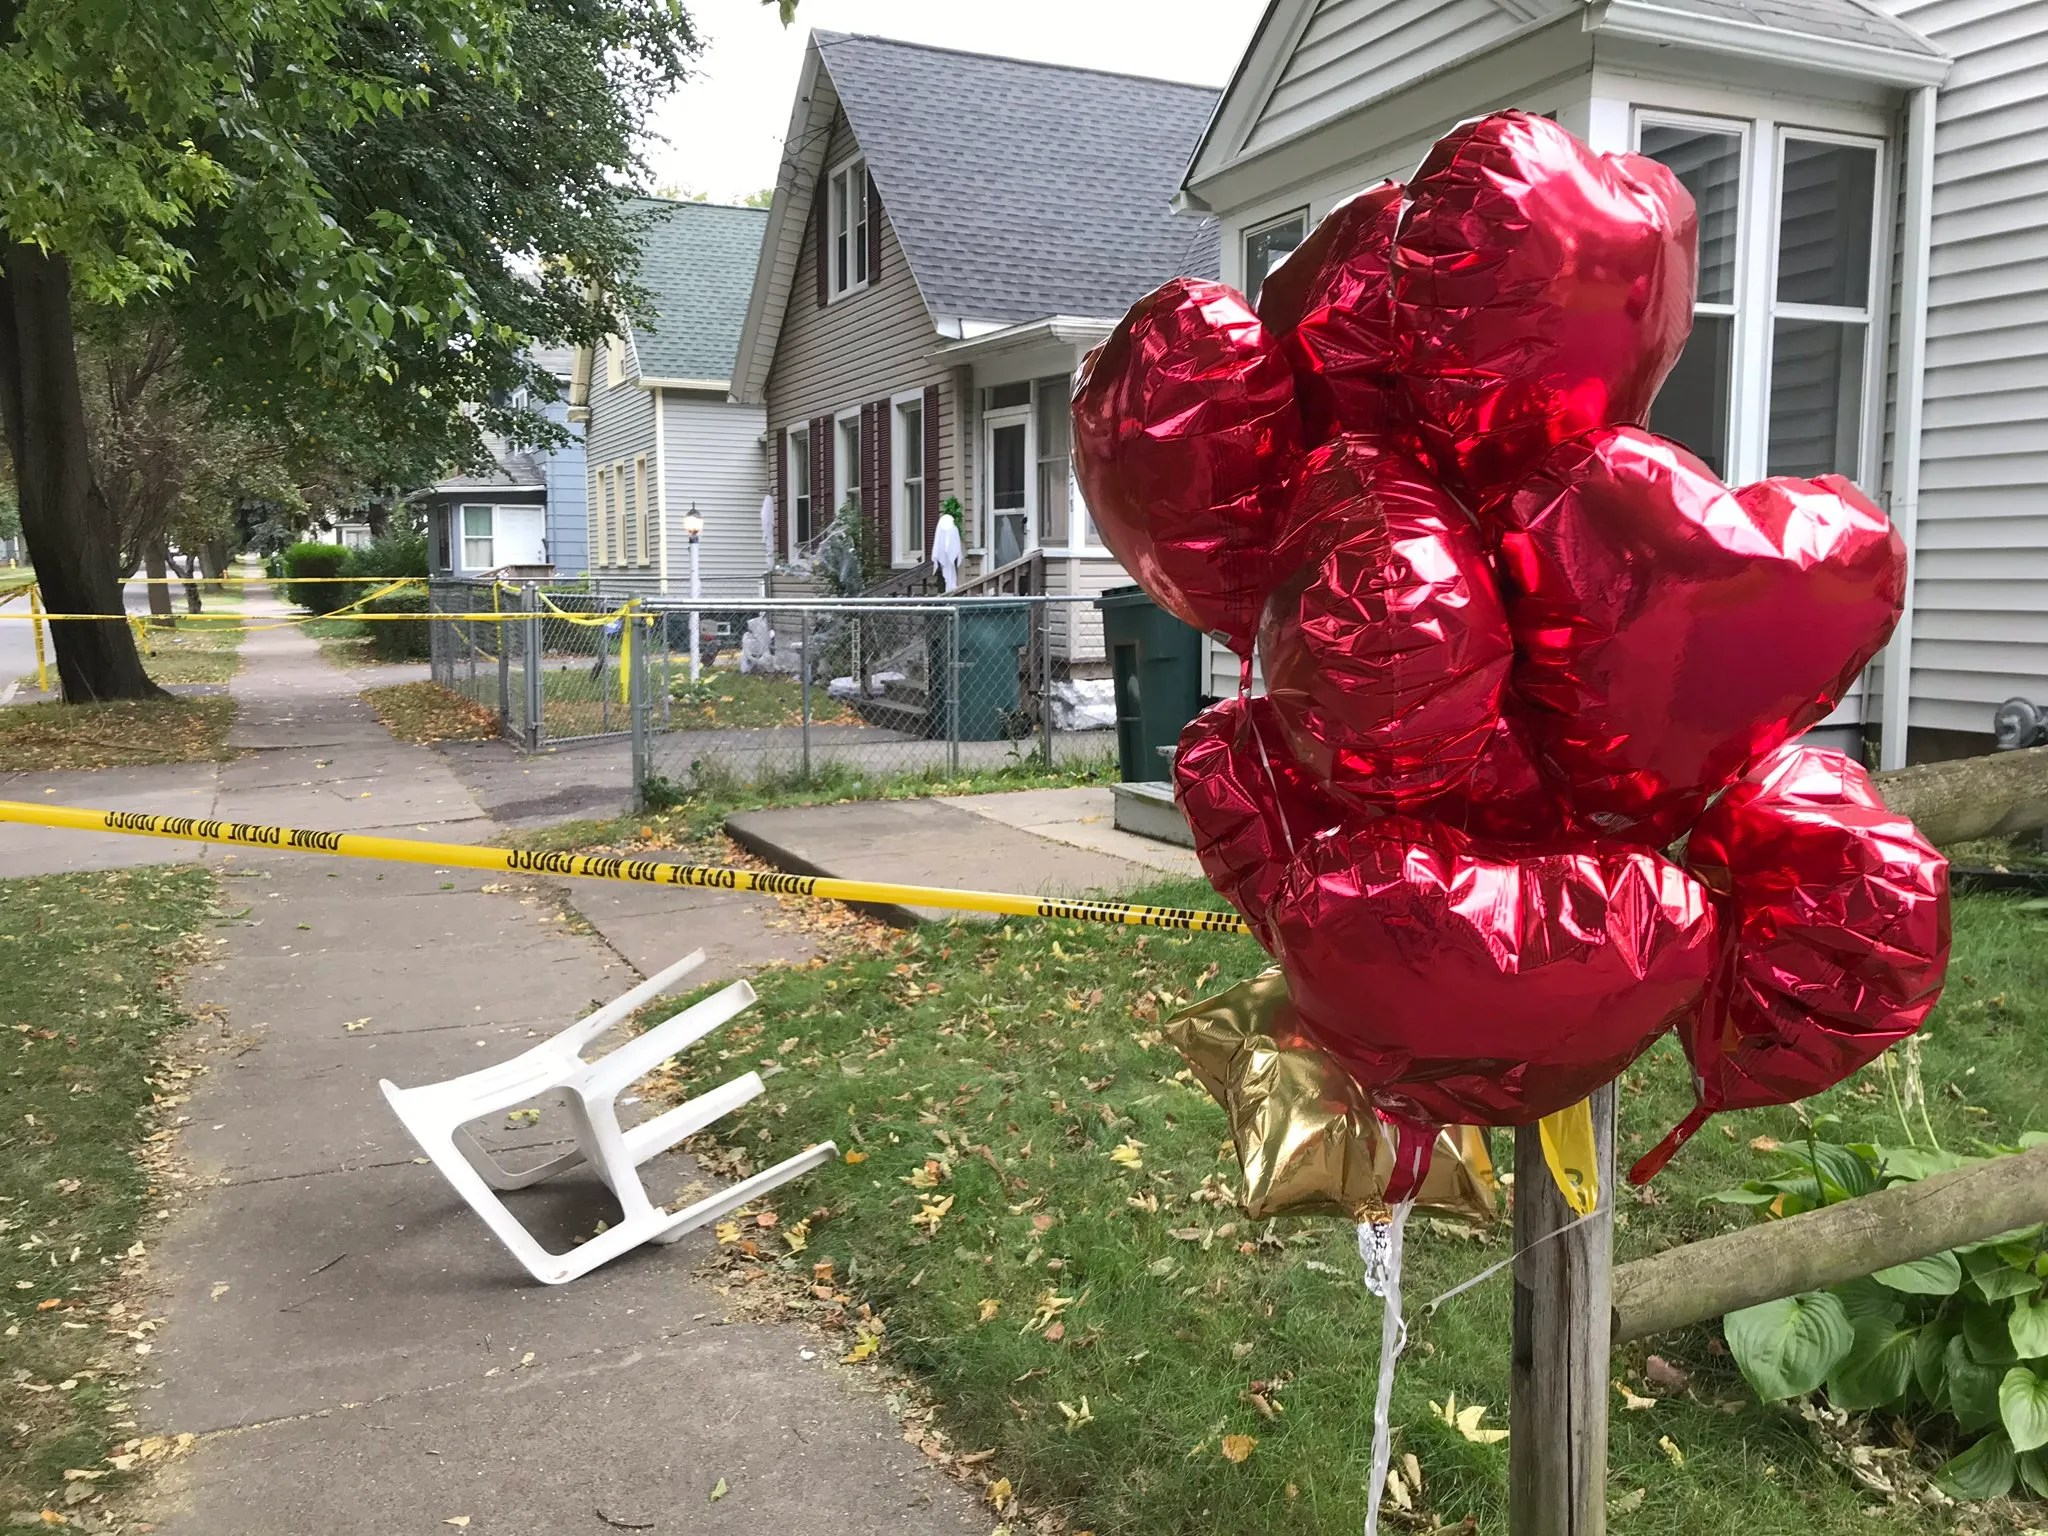 Photo of 'Horrific act of violence': Rochester, New York, grieves for 2 students killed in mass shooting that injured 14 others